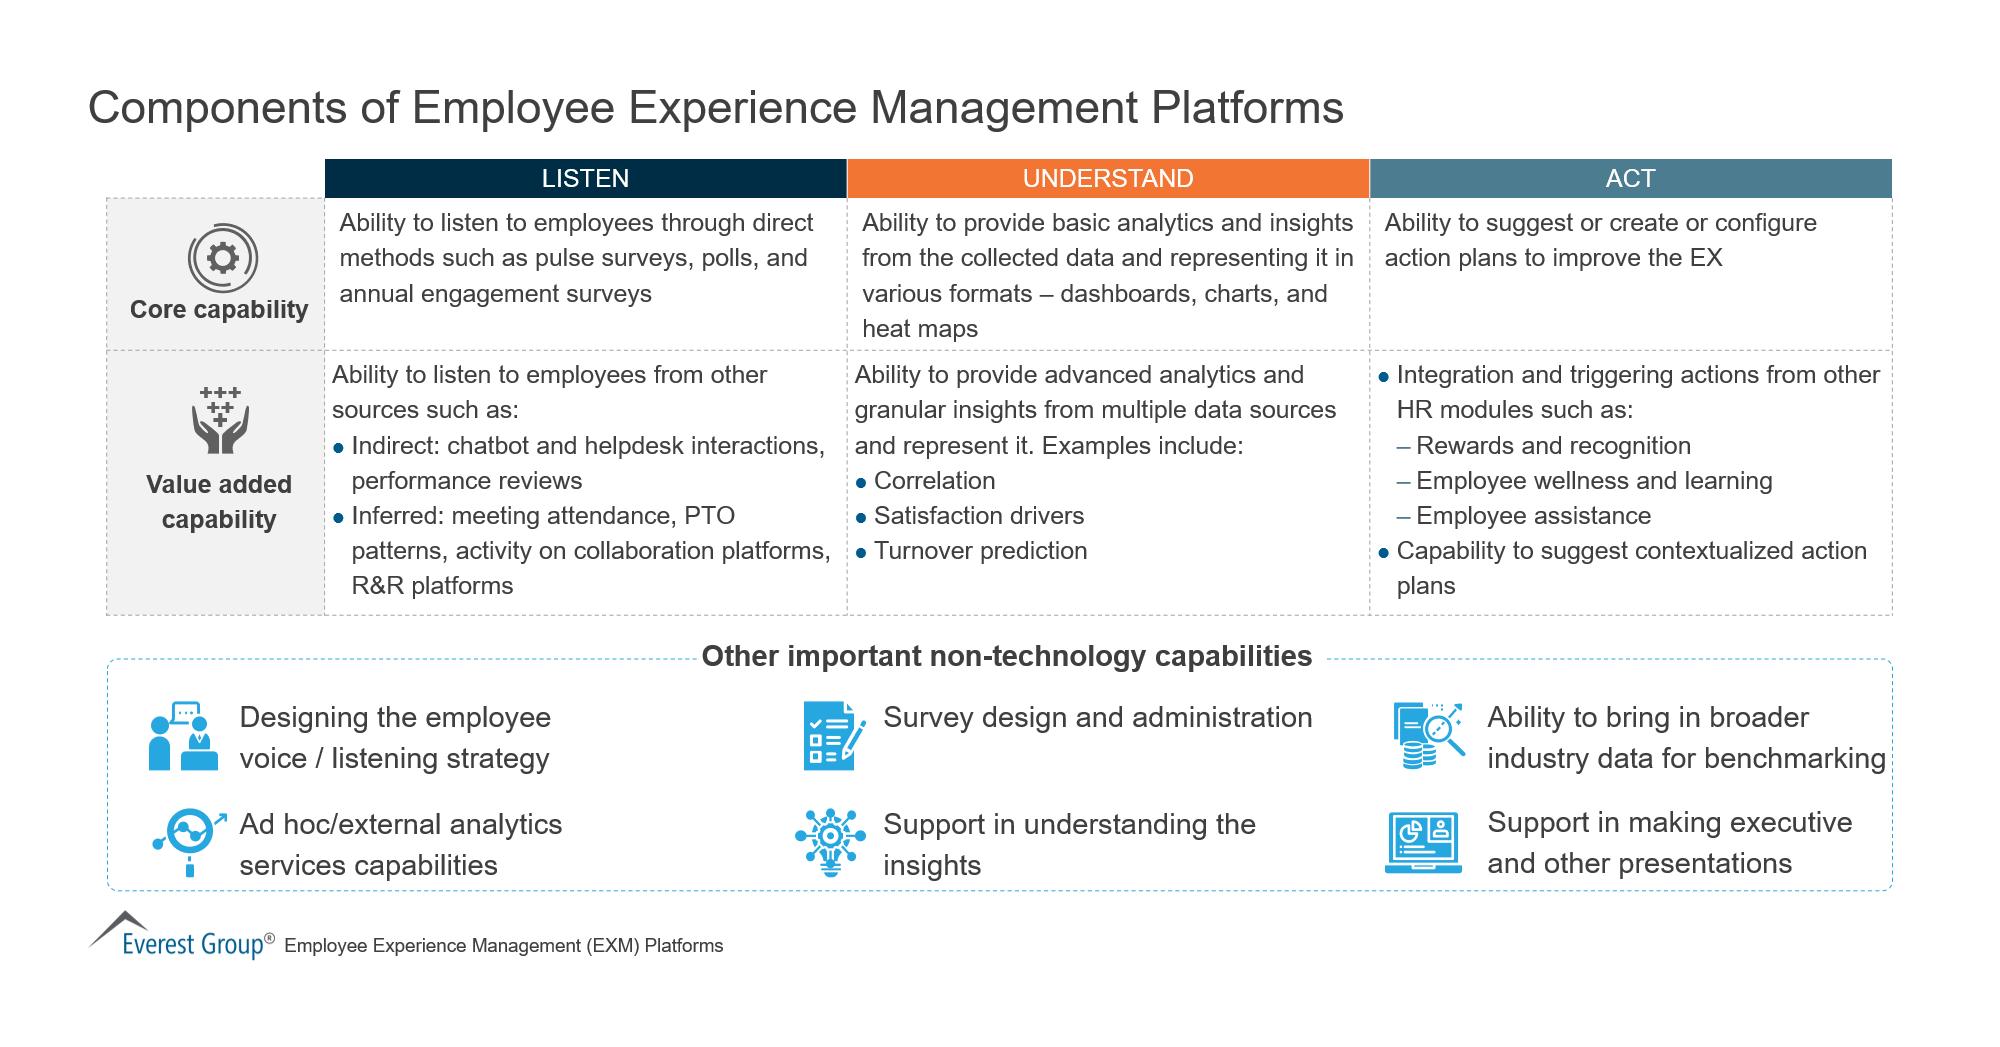 Components of Employee Experience Management Platforms